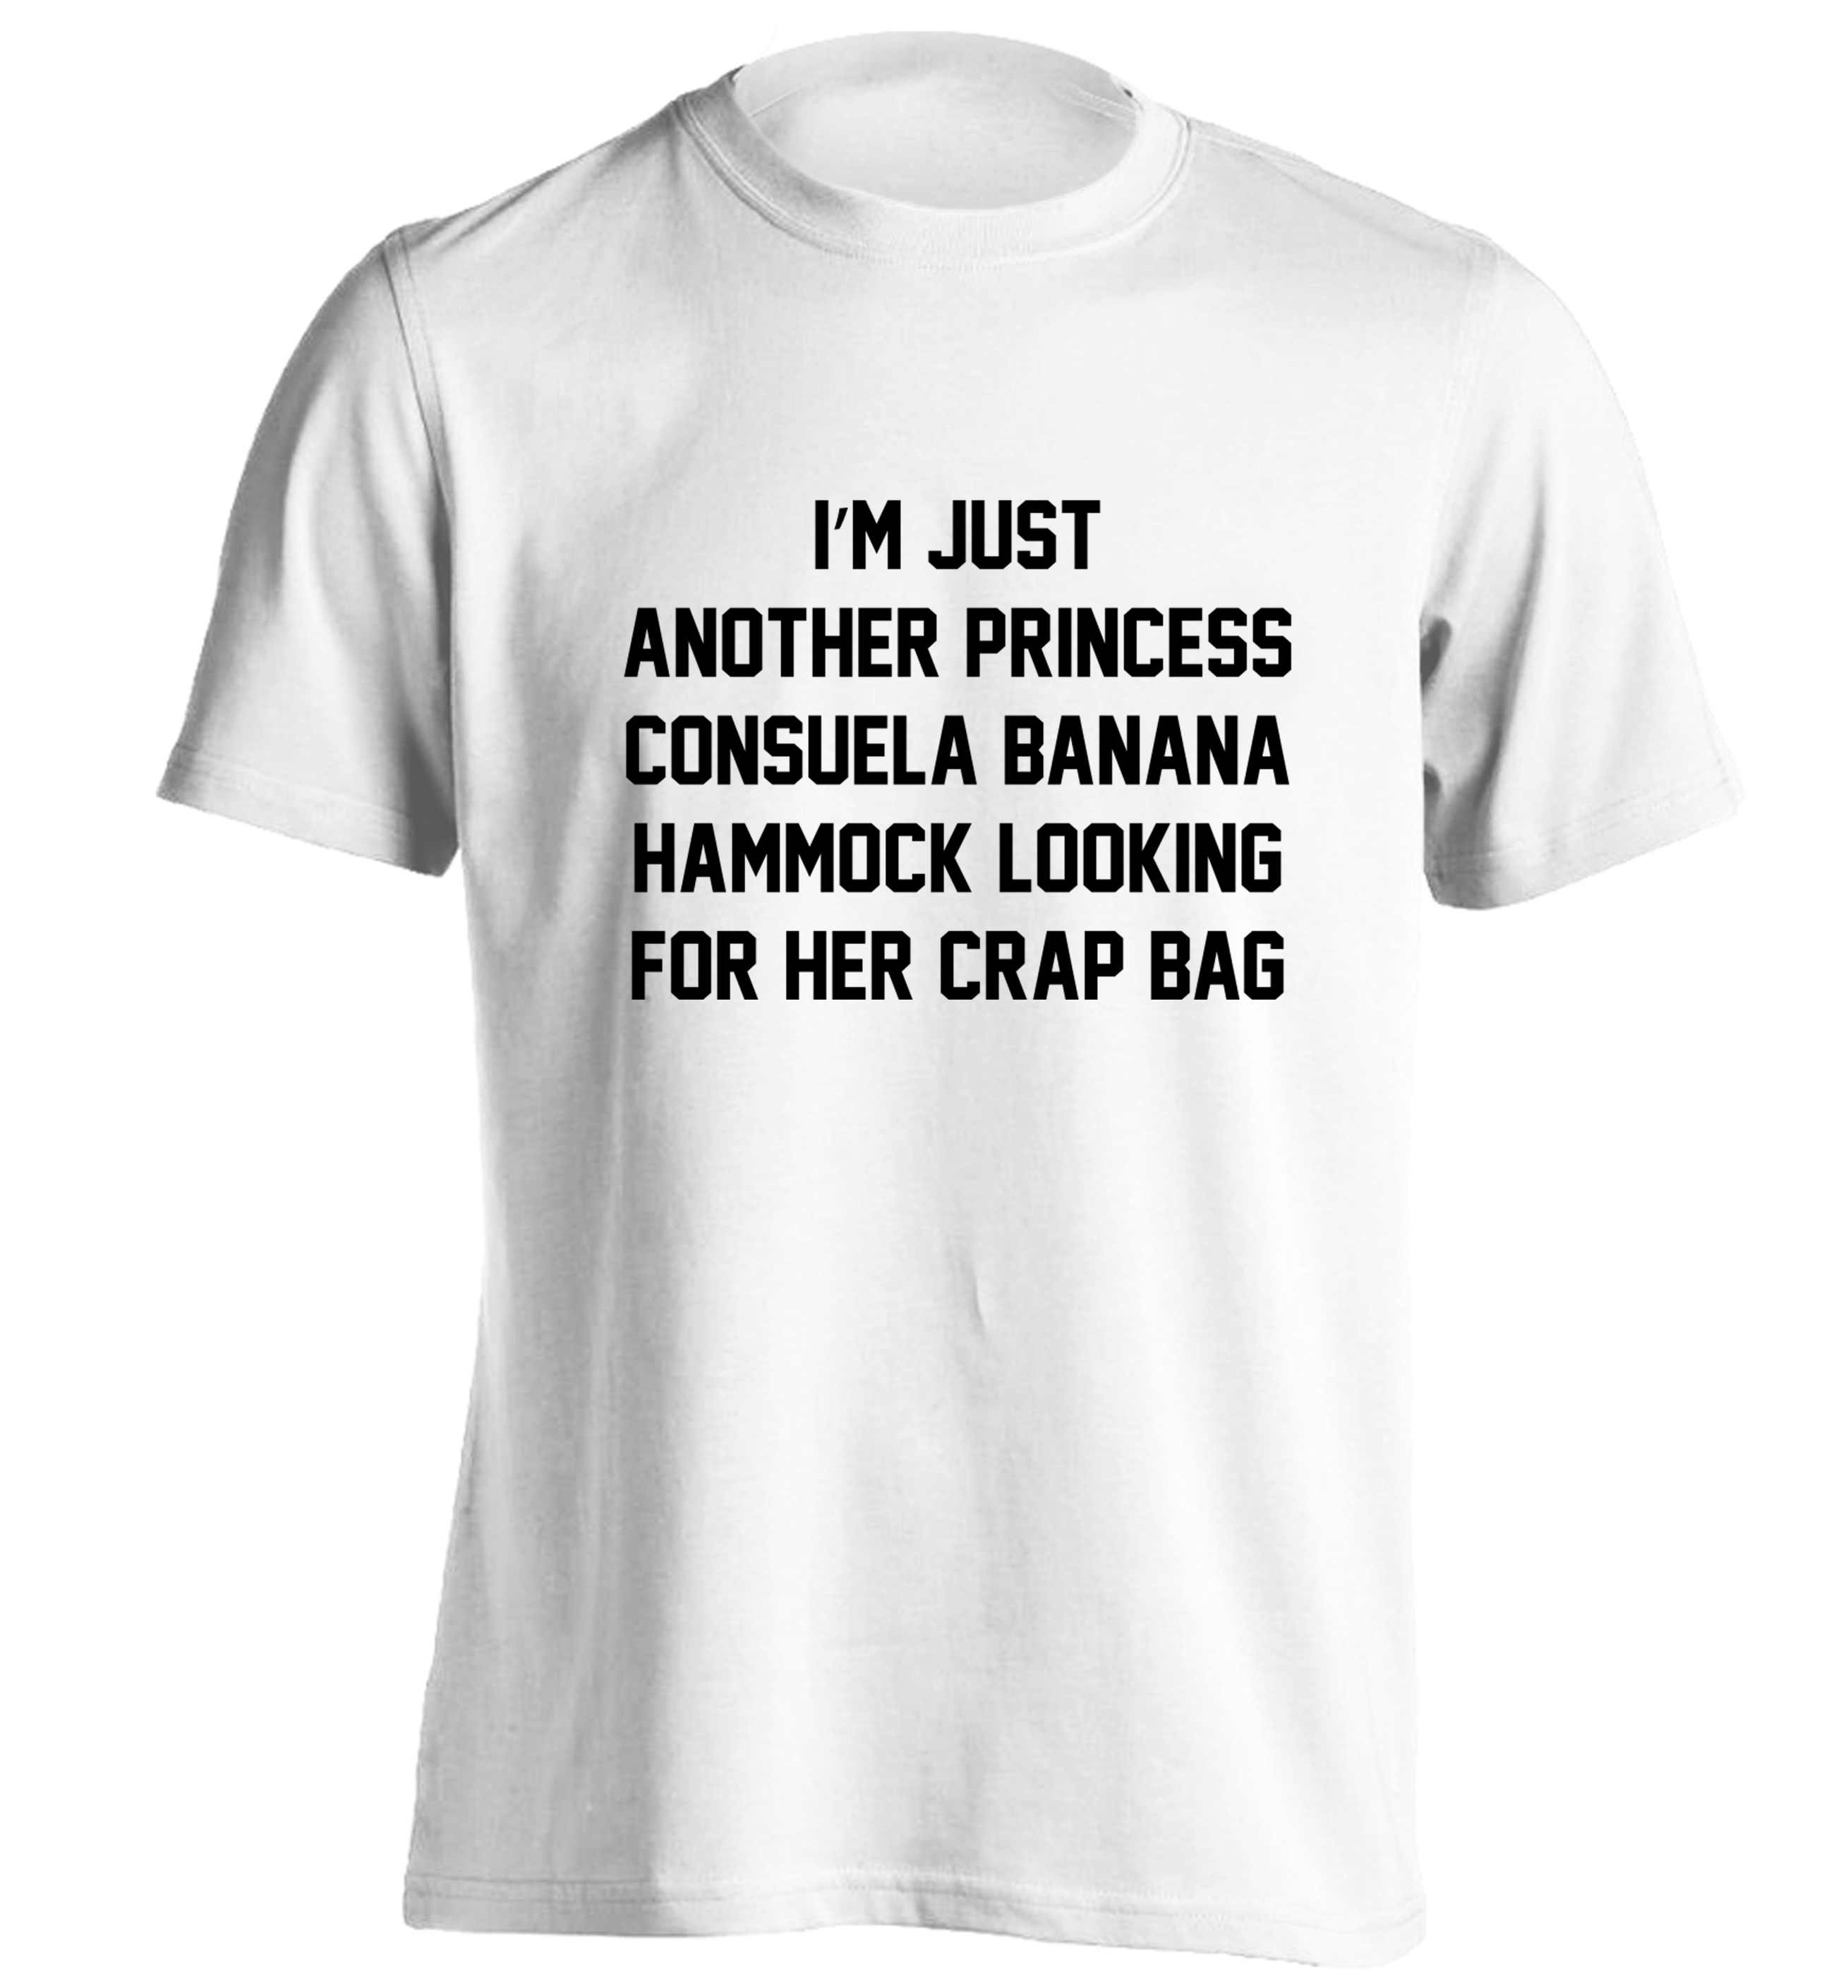 120 20white tshirt small i u0027m just another princess consuela banana hammock looking for her      rh   storenvy